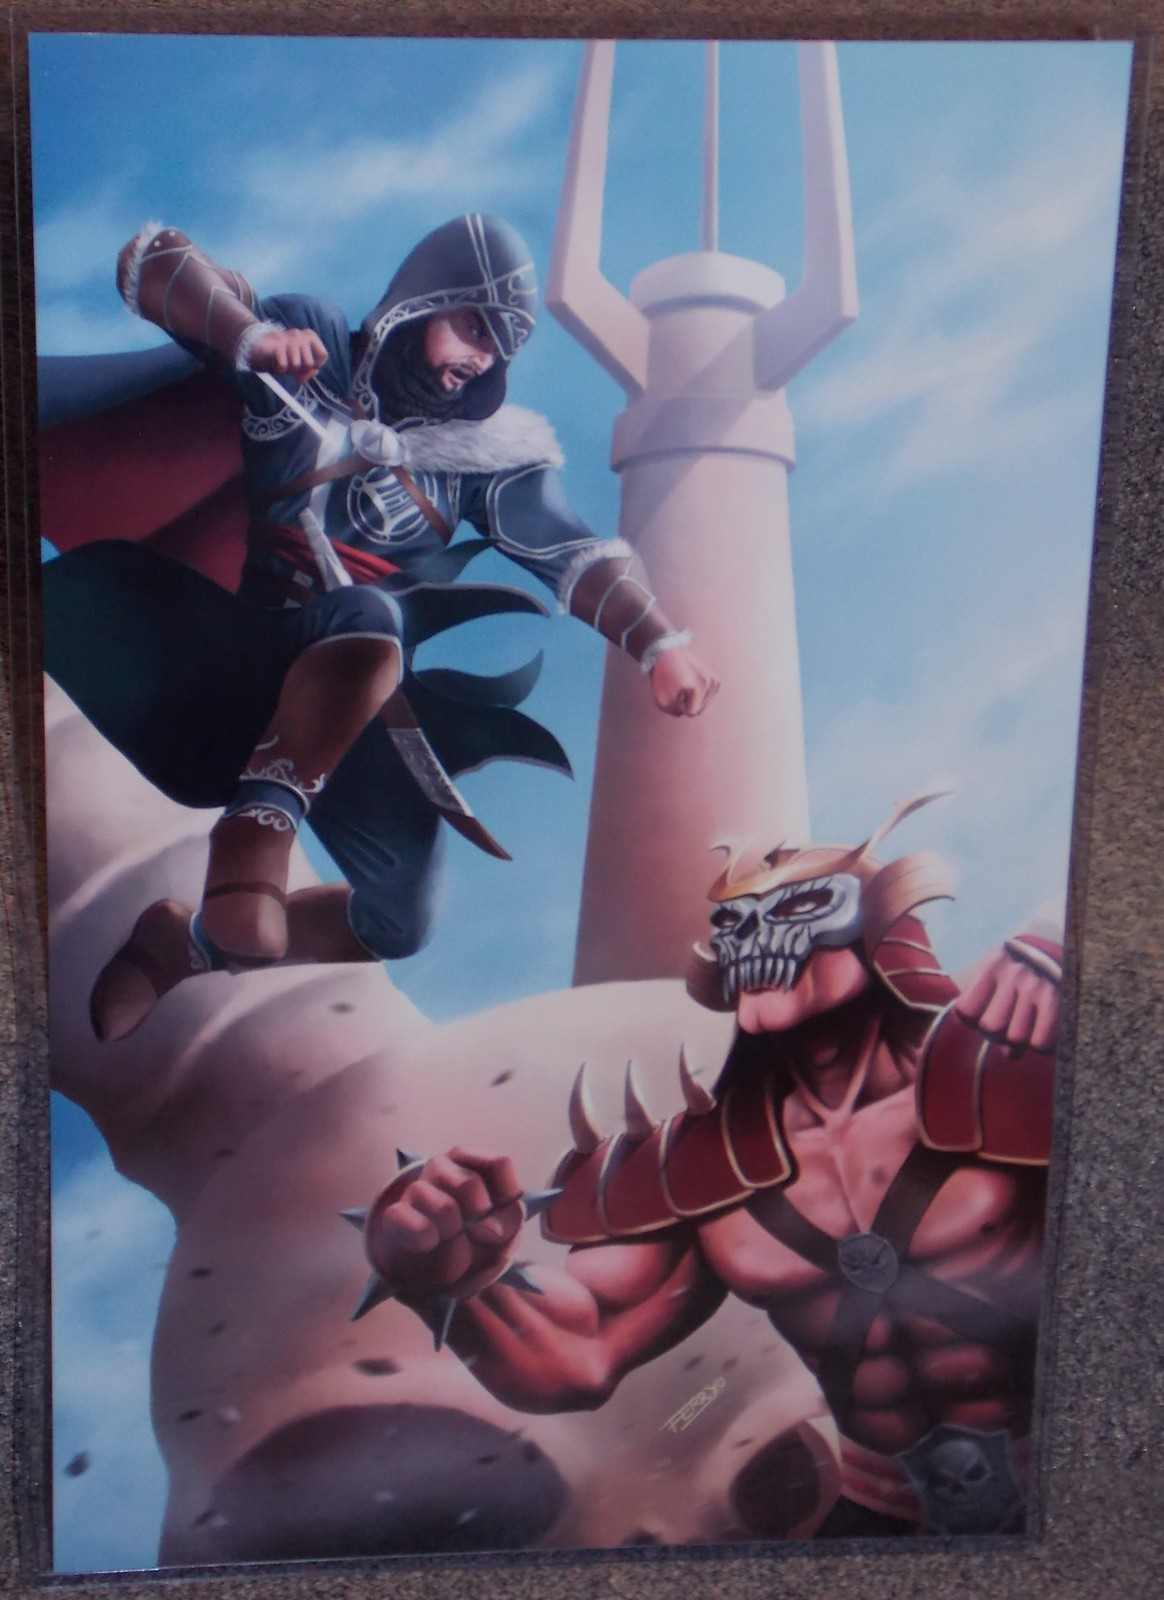 Primary image for Assassins Creed Ezio vs Mortal Kombat Shao Kahn Glossy print 11 x 17 In Sleeve